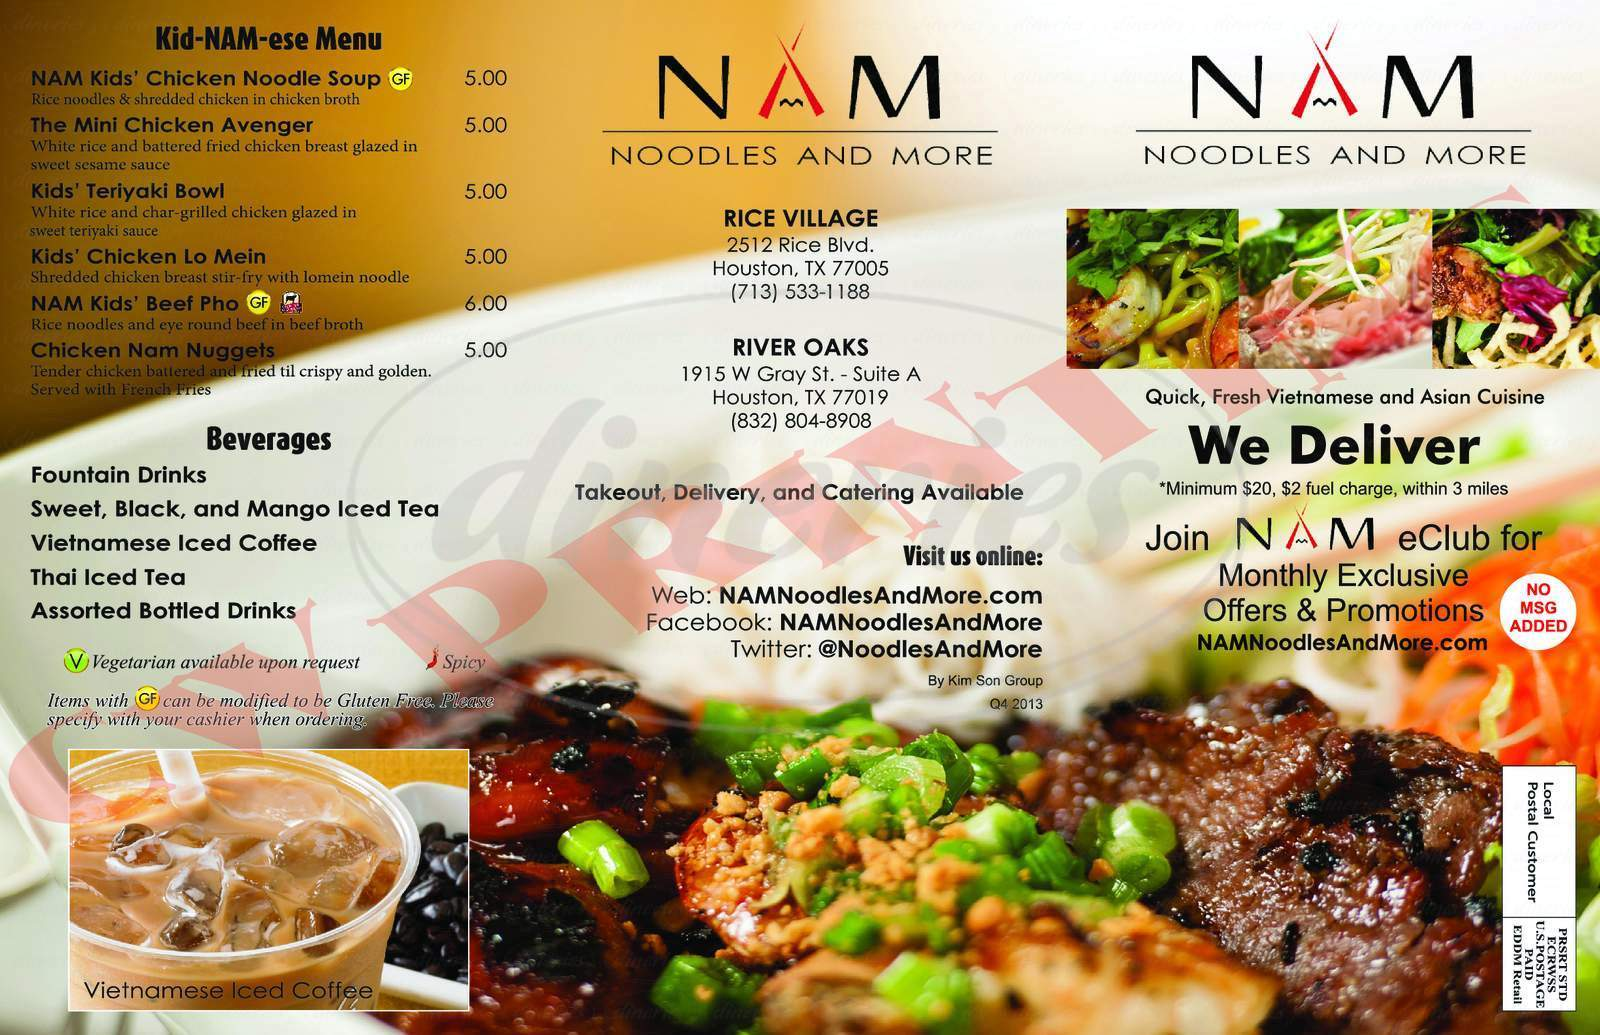 menu for NAM: Noodles And More